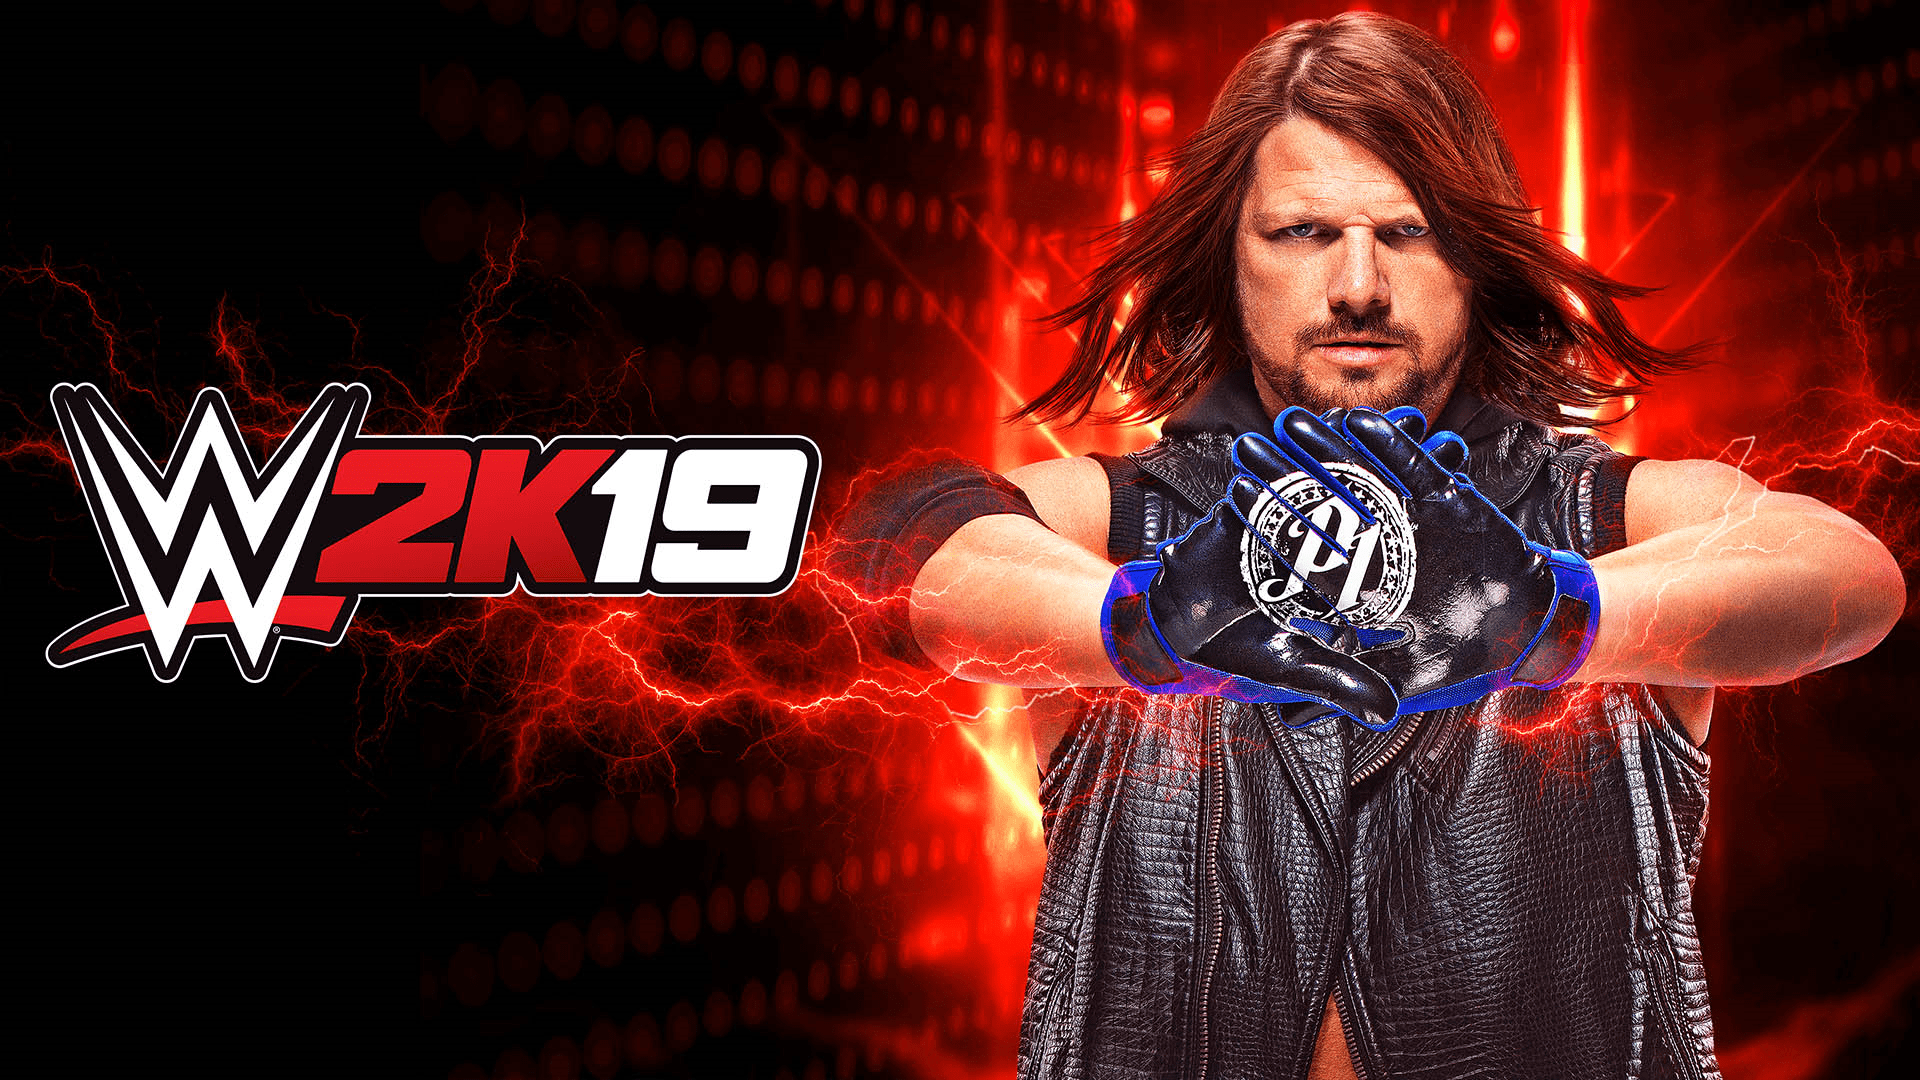 Wwe 2k19 Wallpapers Artworks Images Gallery